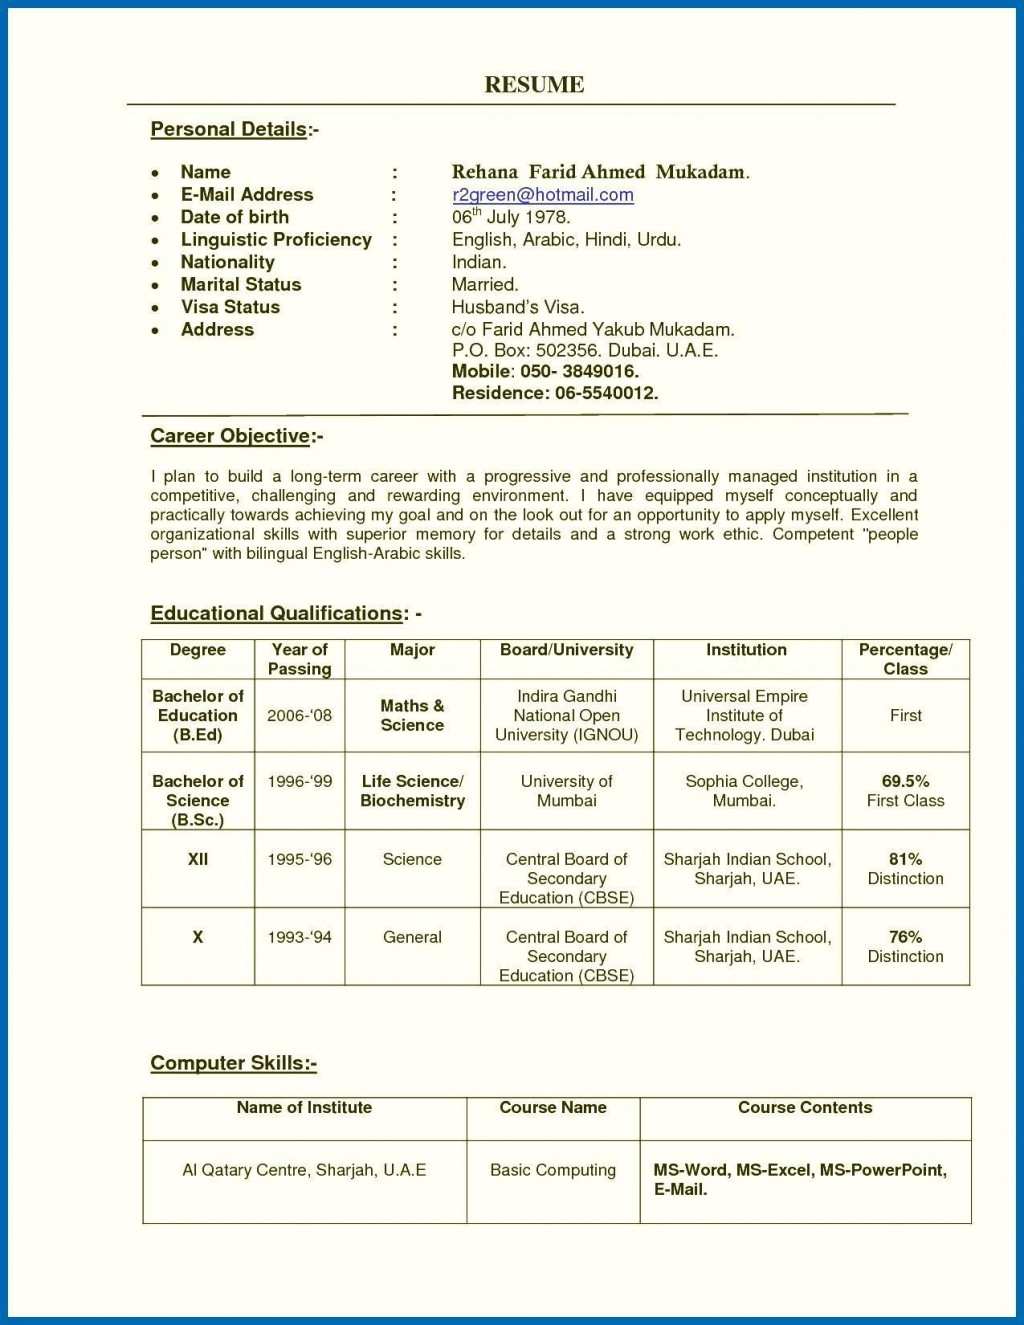 002 Marvelou Resume Sample For Teaching Job In India High Definition  School Principal PositionLarge